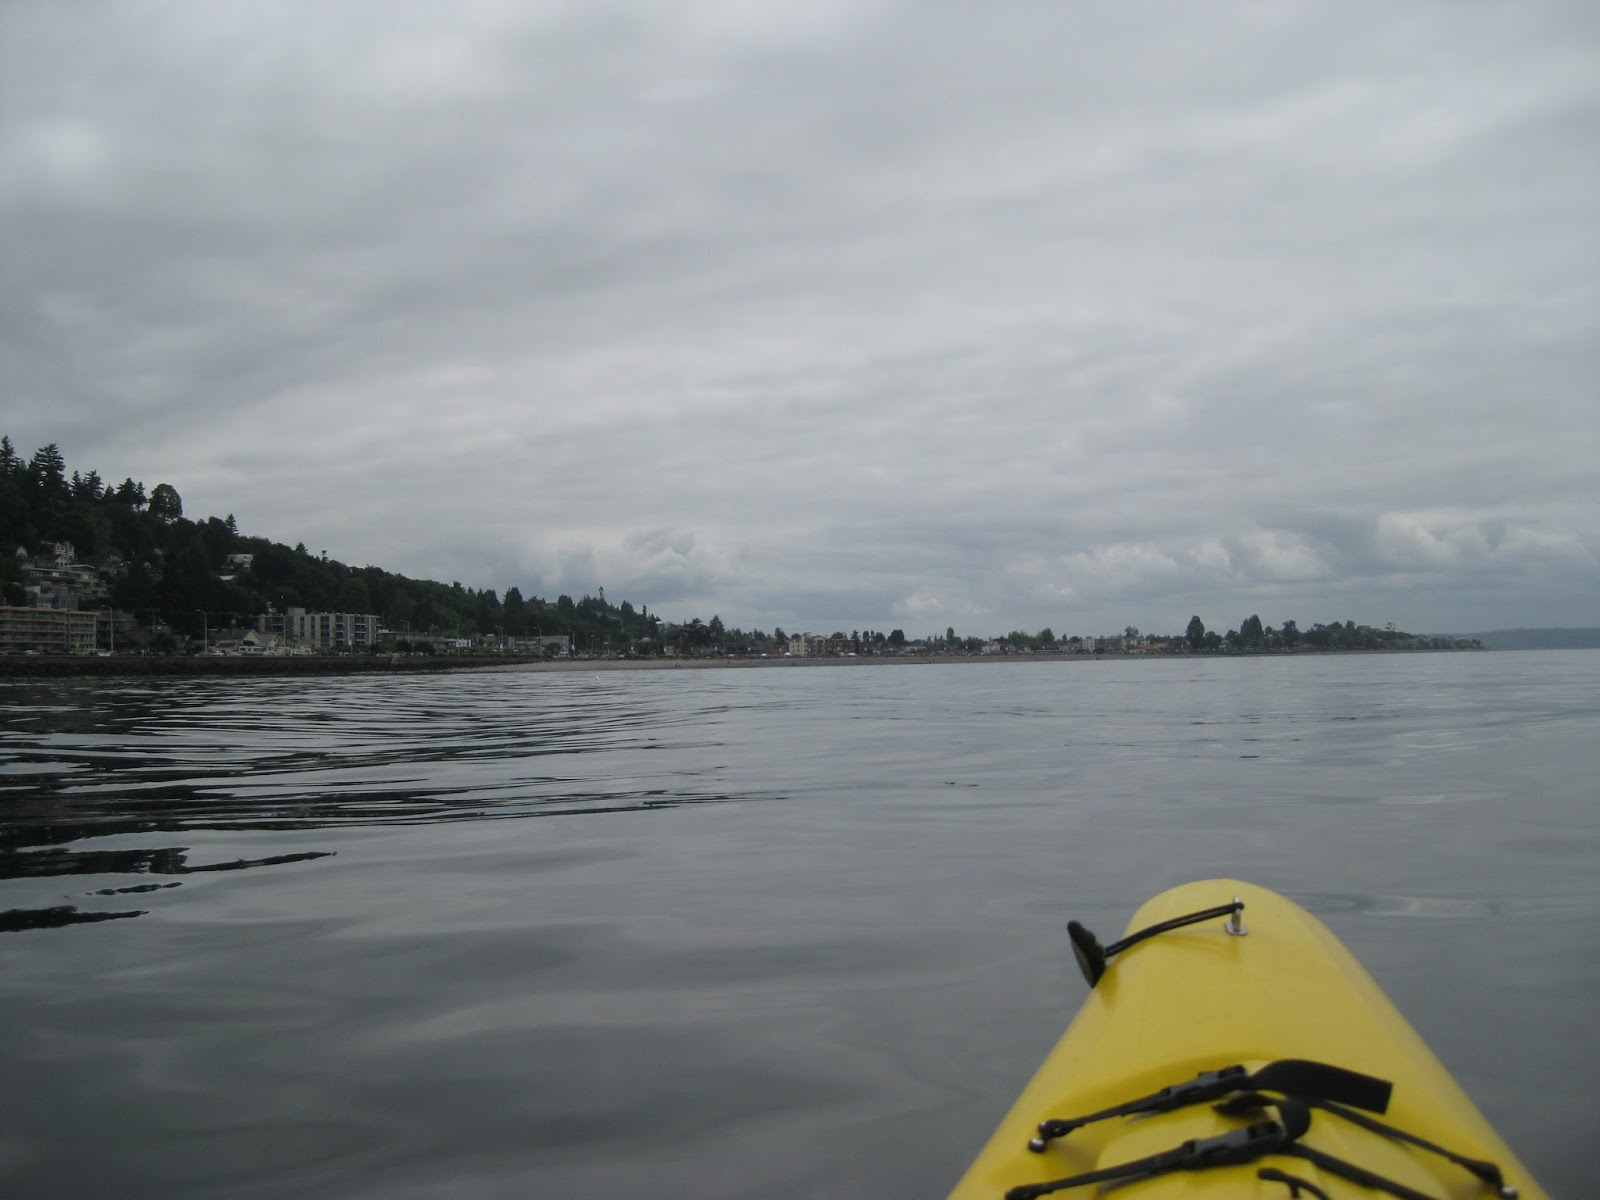 The View From Kayak Along Alki Beach